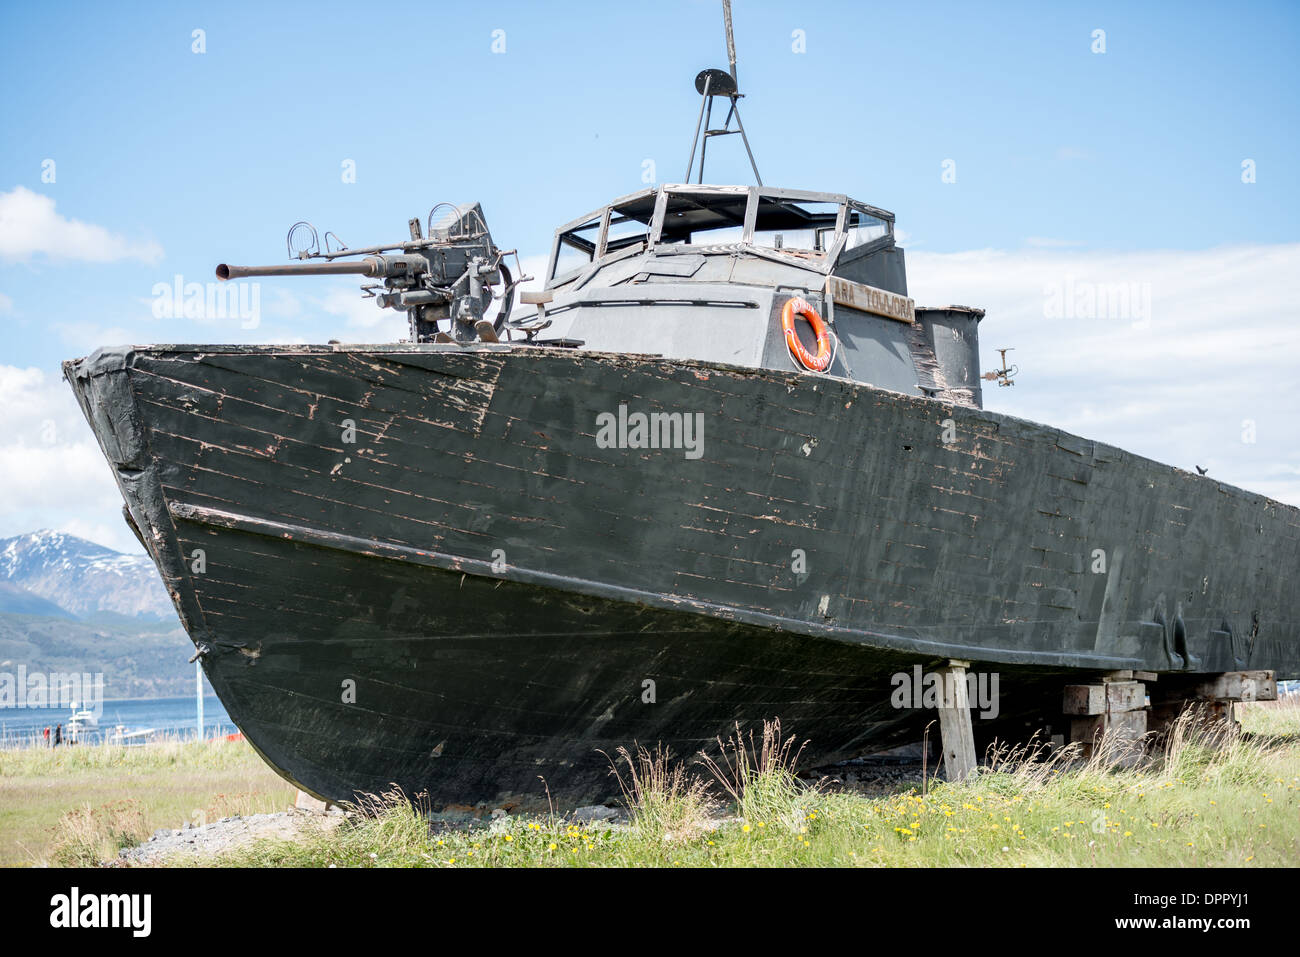 A PT boat, formerly of the Argentinian Navy, the Ara Towwora, sits on Stock Photo: 65658153 - Alamy